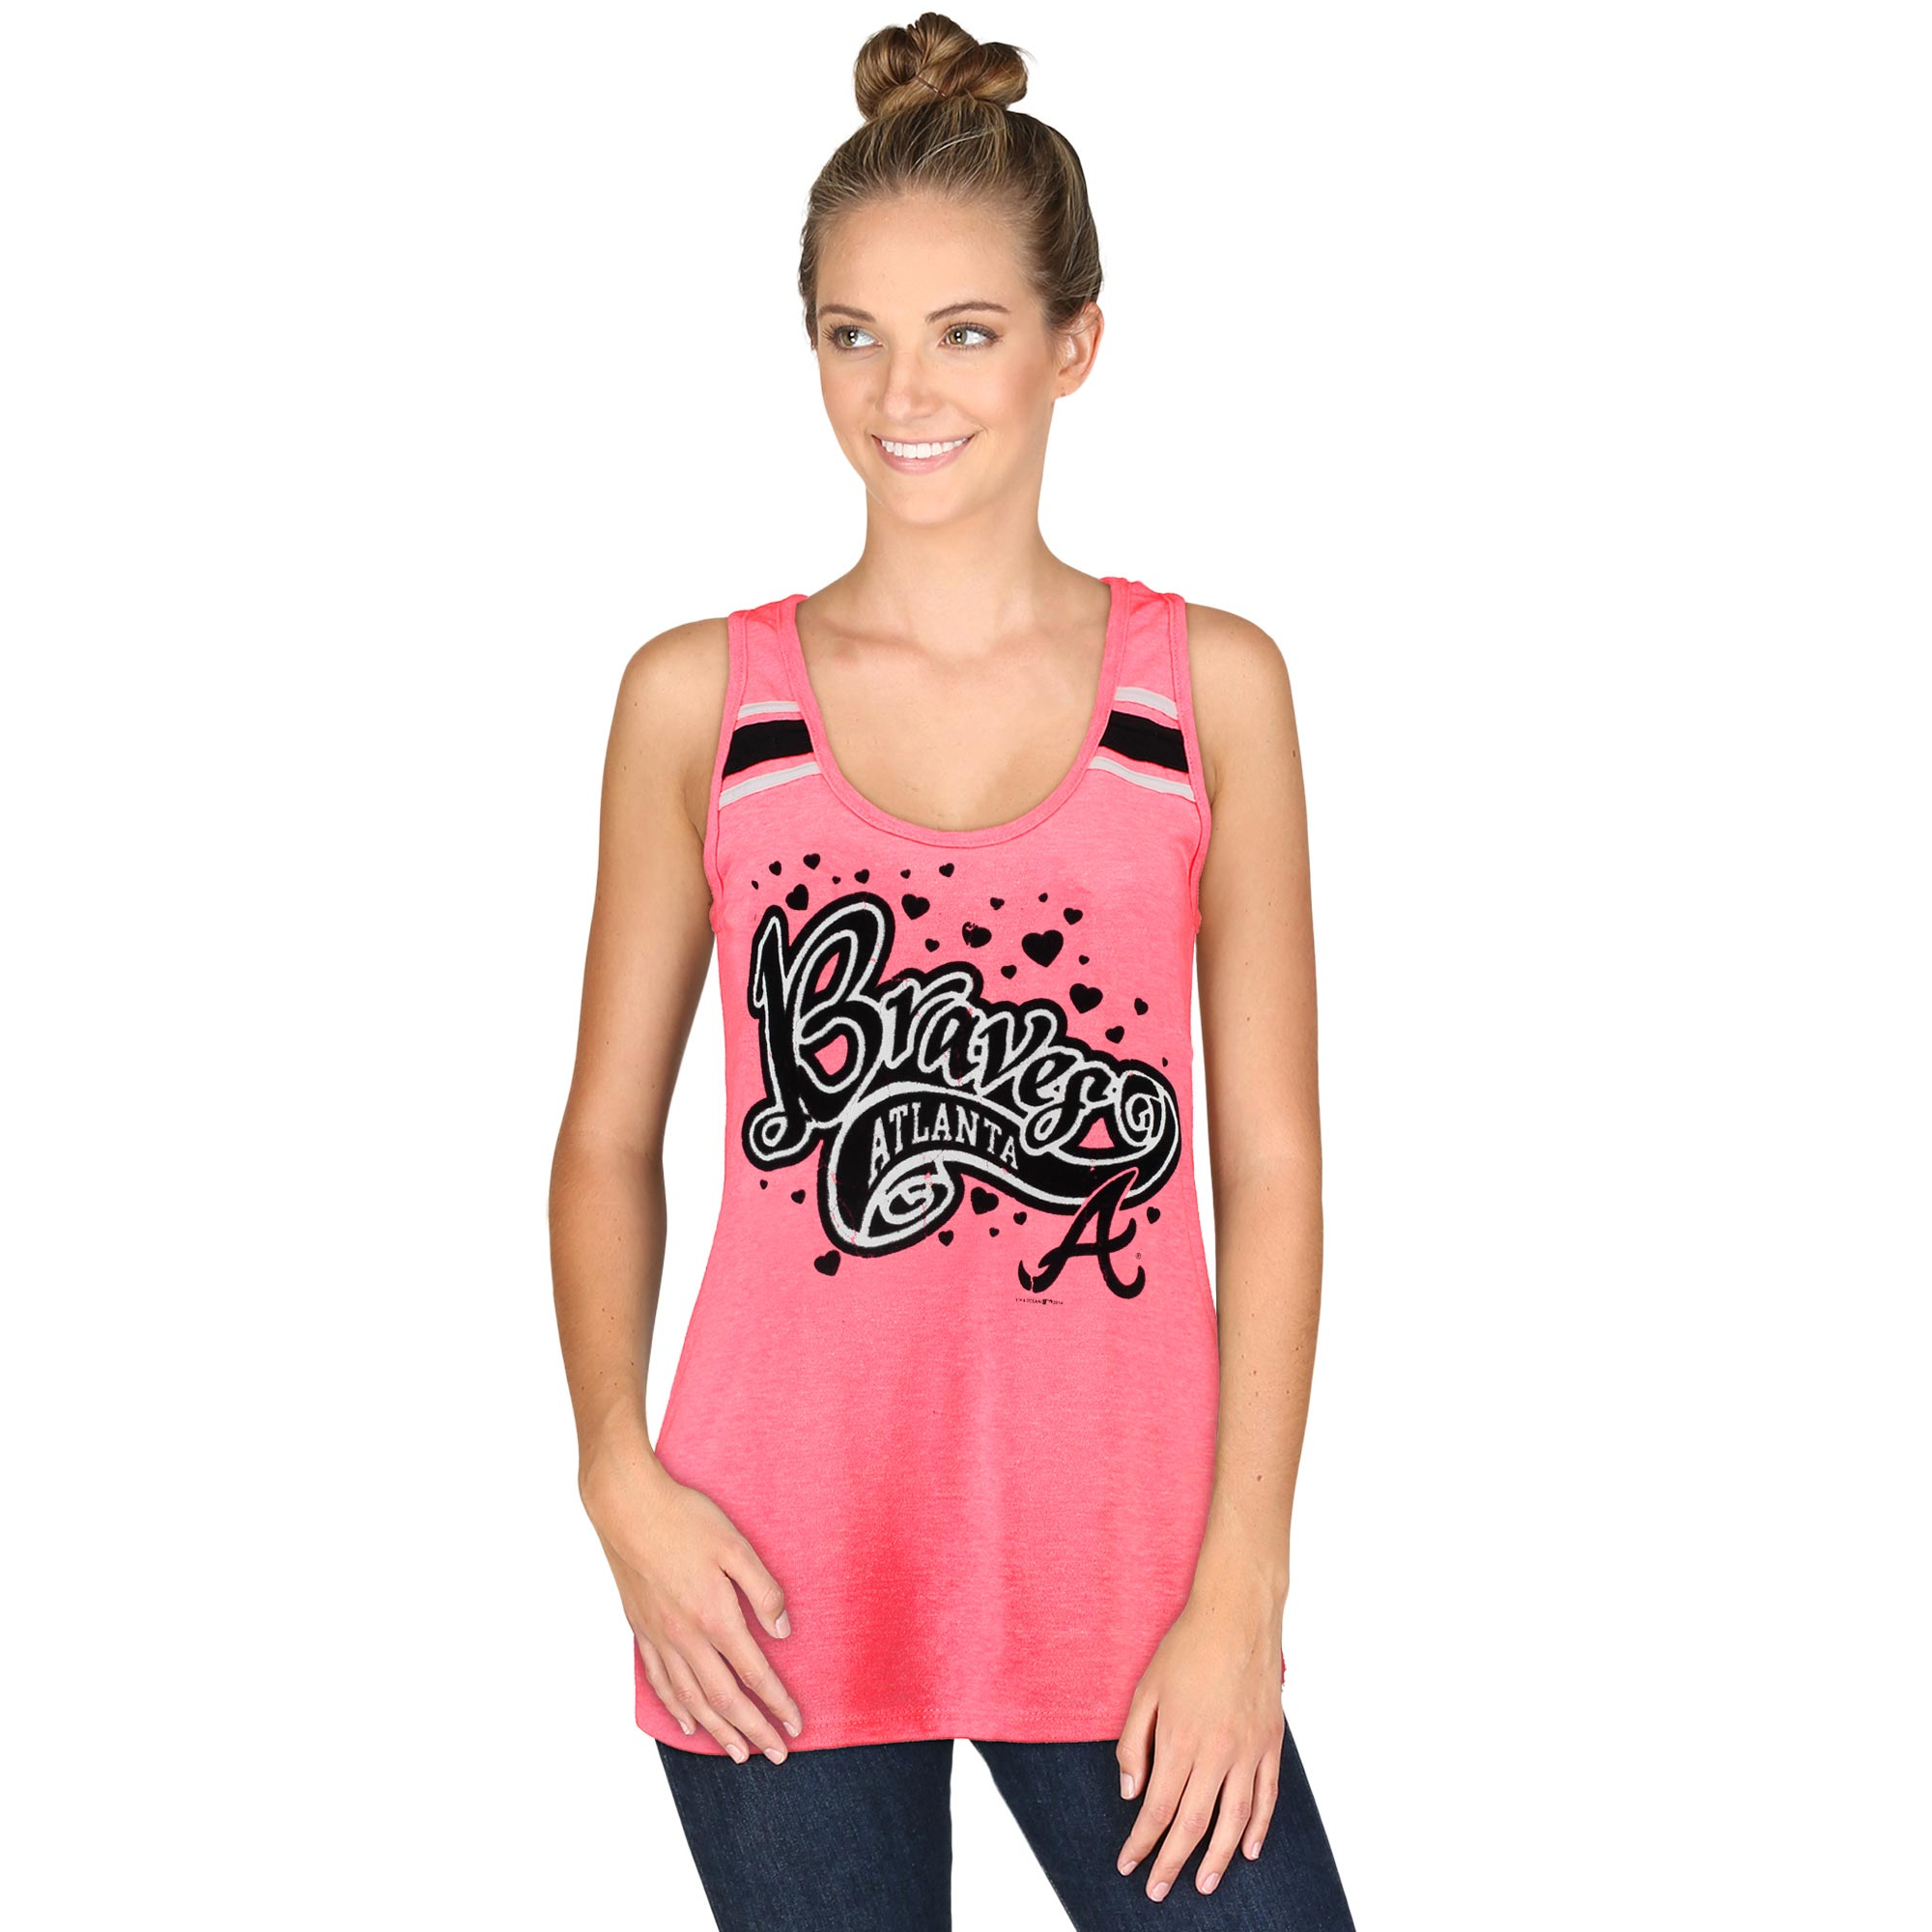 Atlanta Braves 5th & Ocean by New Era Women's Racerback Tank Top with Contrast Stripes - Pink